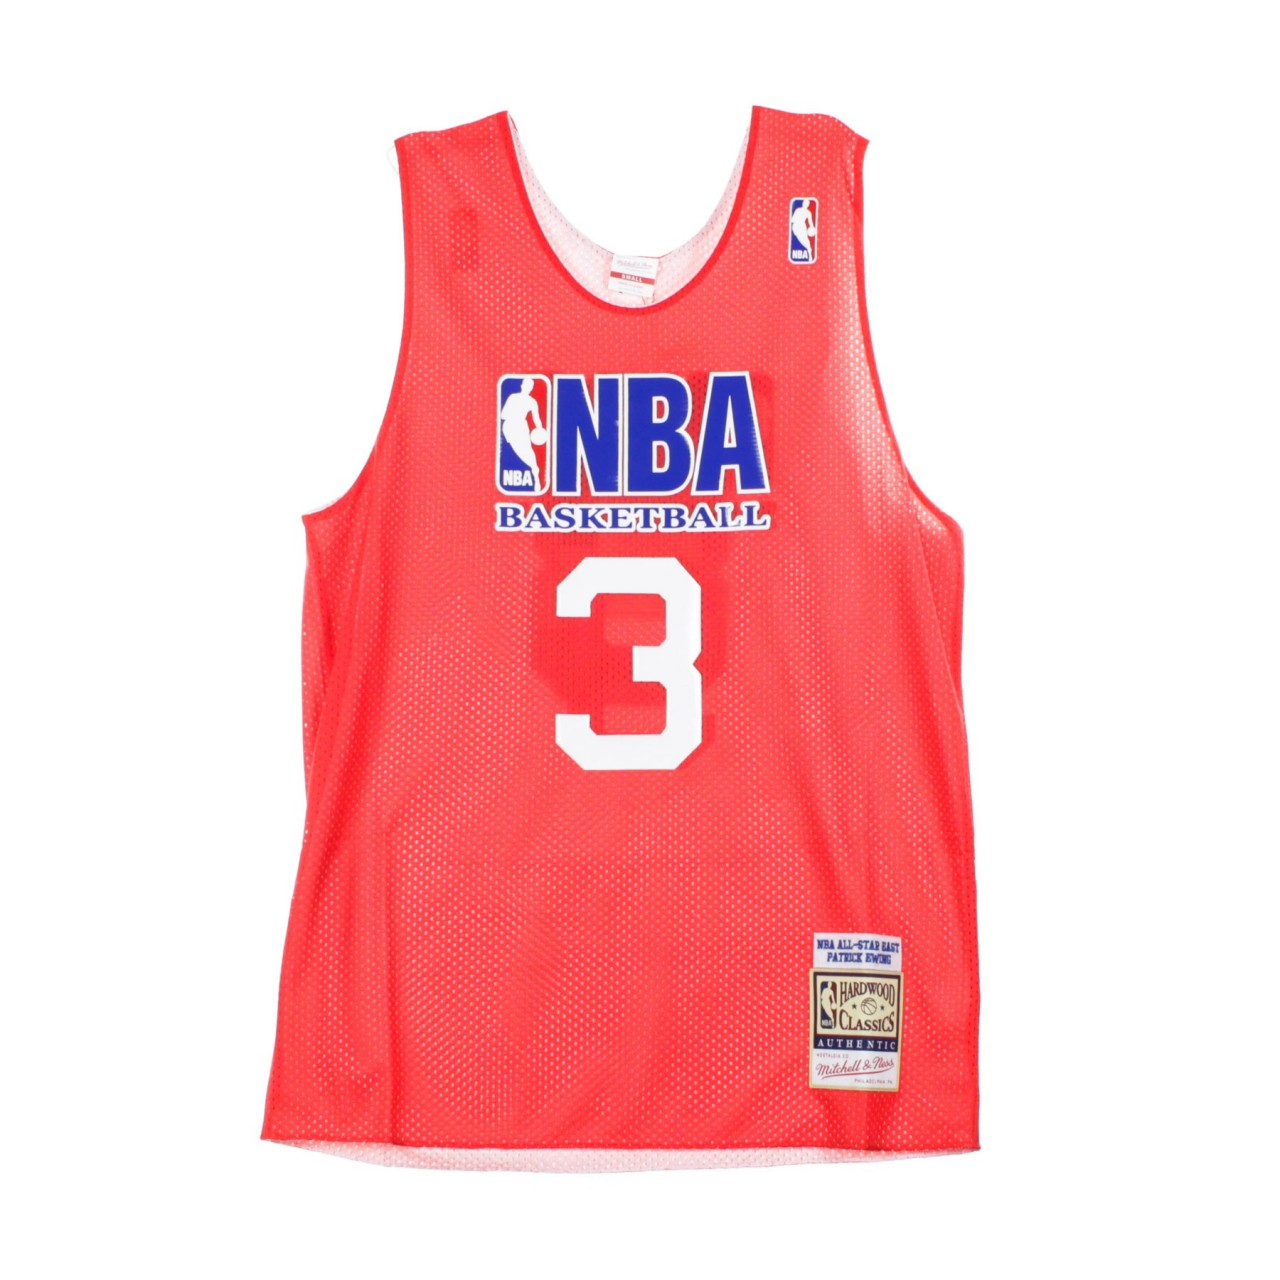 MITCHELL & NESS REVERSIBLE PRACTICE JERSEY NO.3 PATRICK EWING ALL STAR GAME EAST 1991 ARPJEL18001-ASGSCWH91PEW